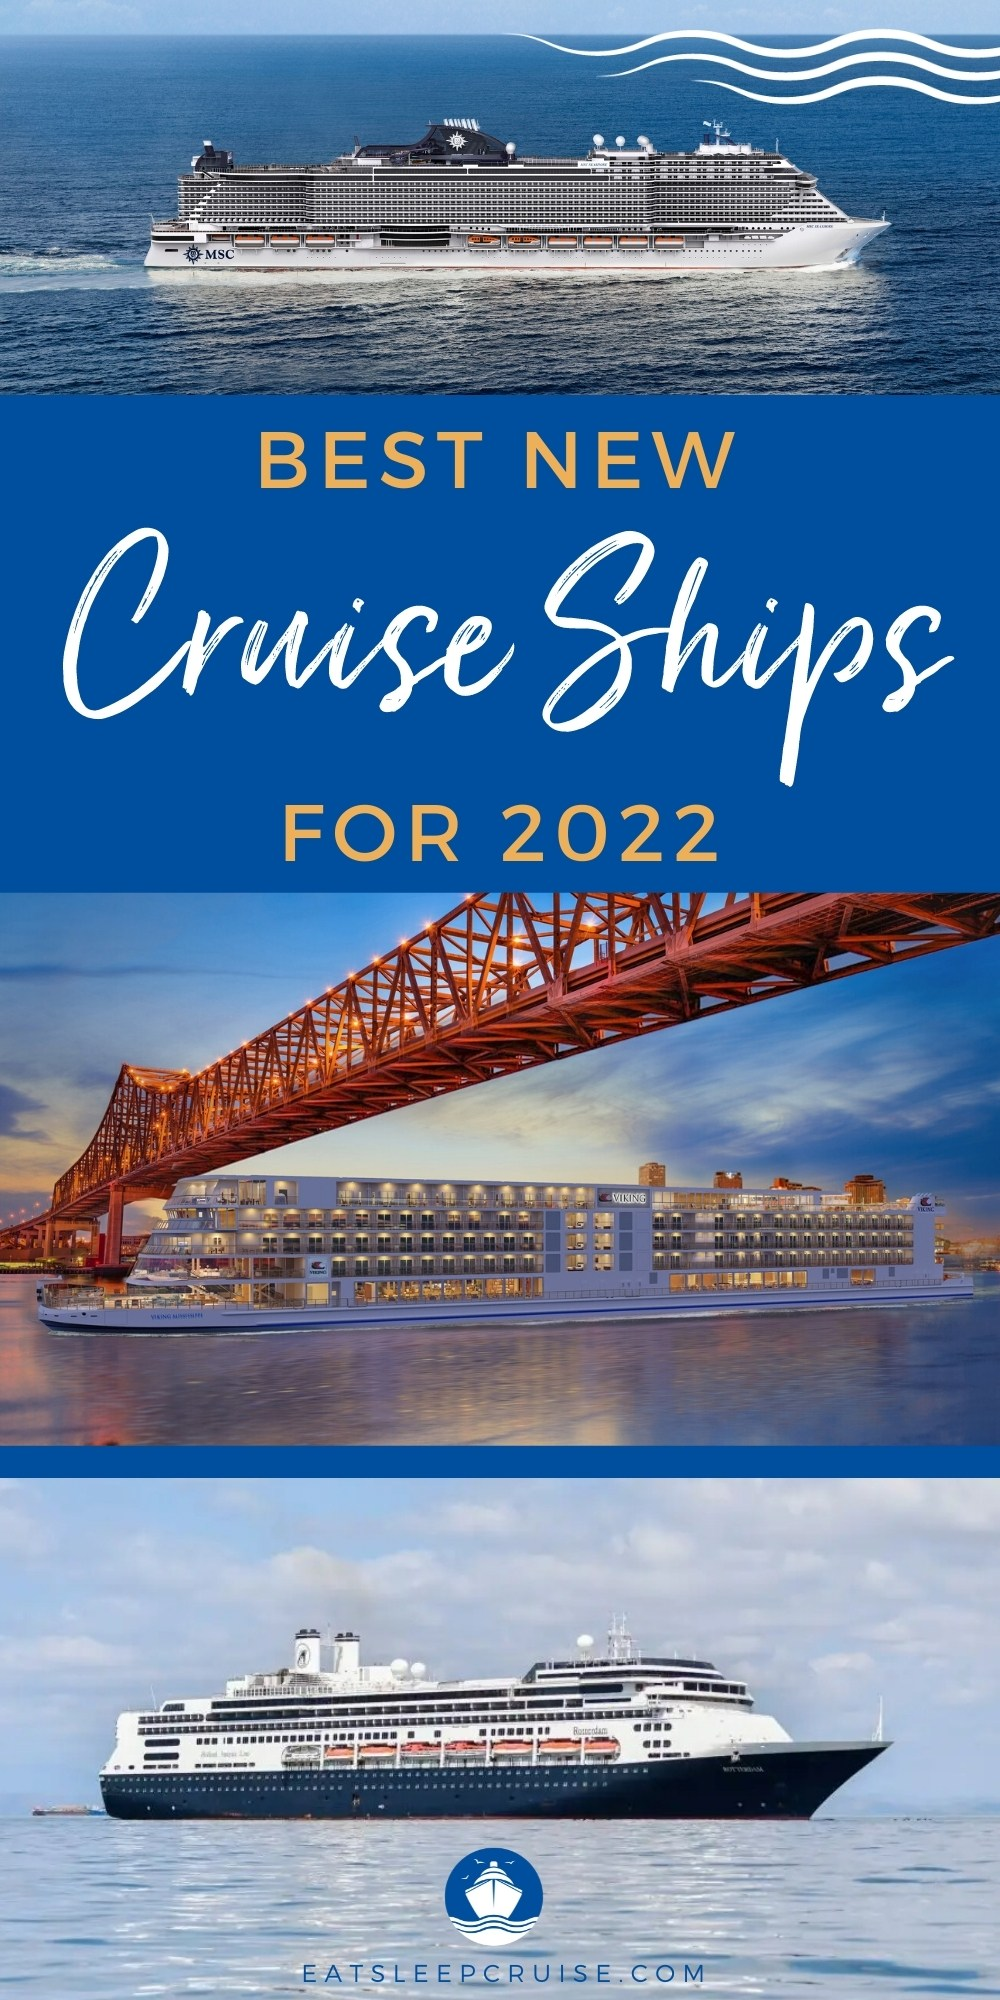 Best Cruise Ships for 2022